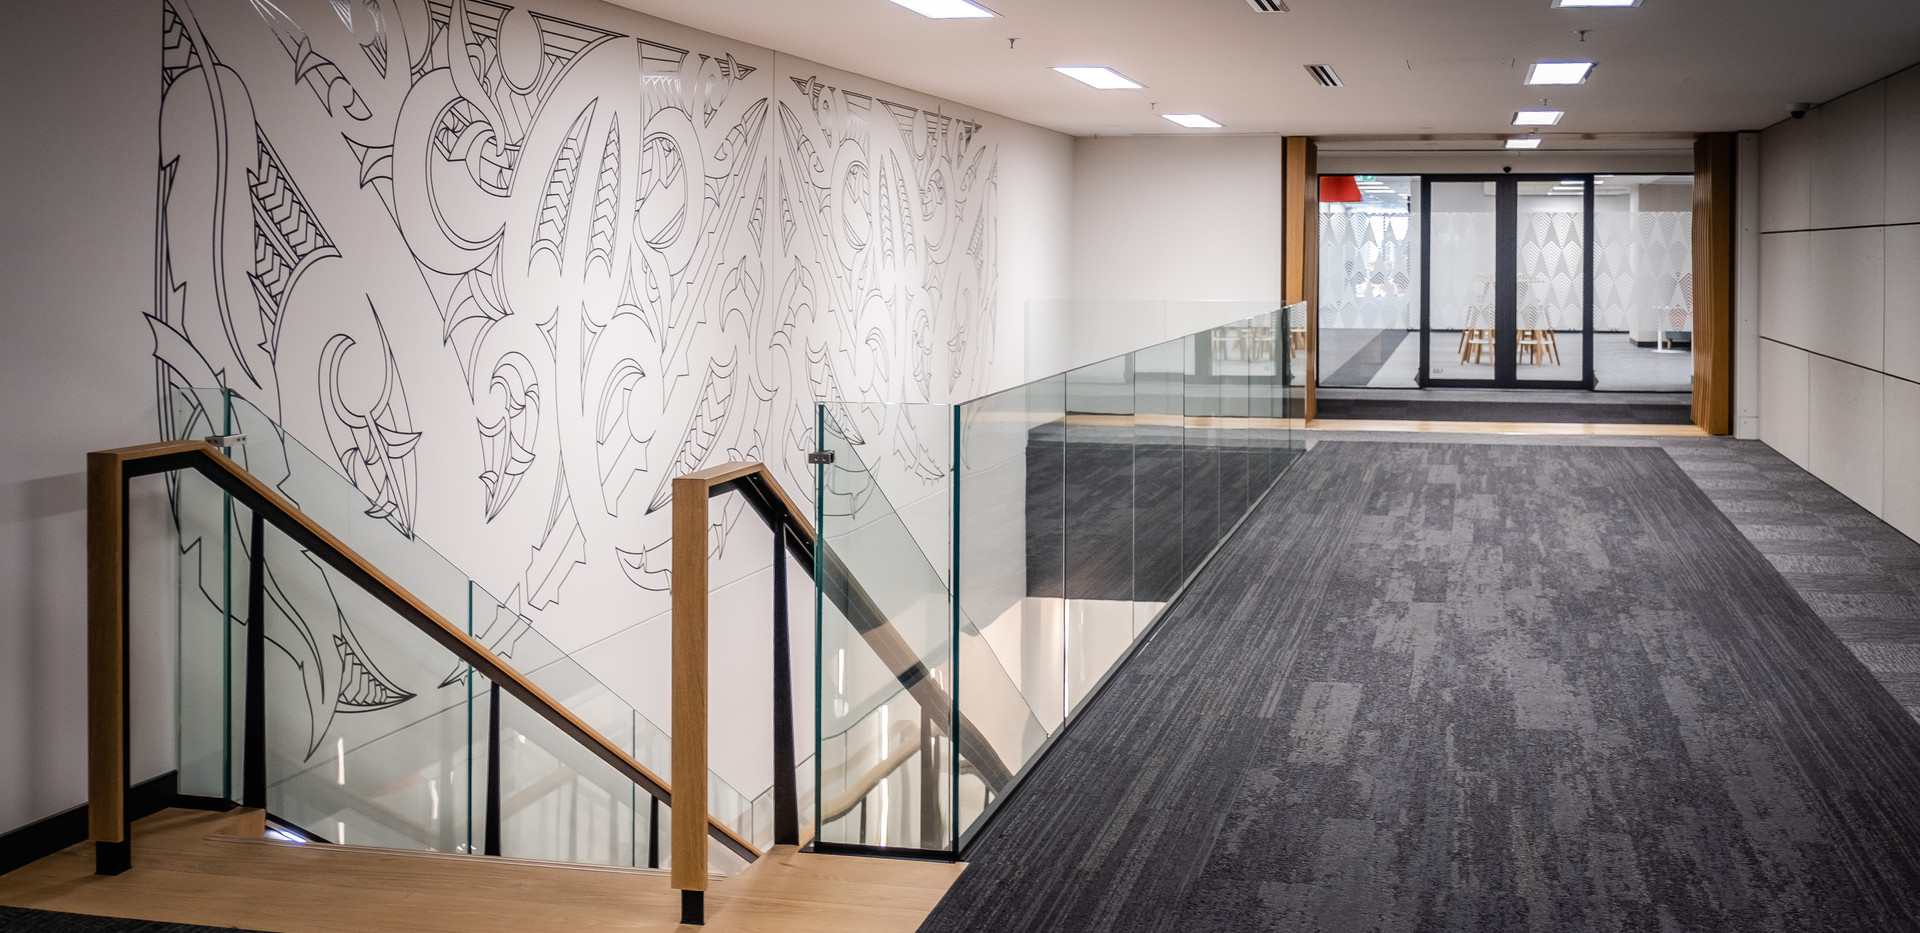 Feature Mural from Top of Stair